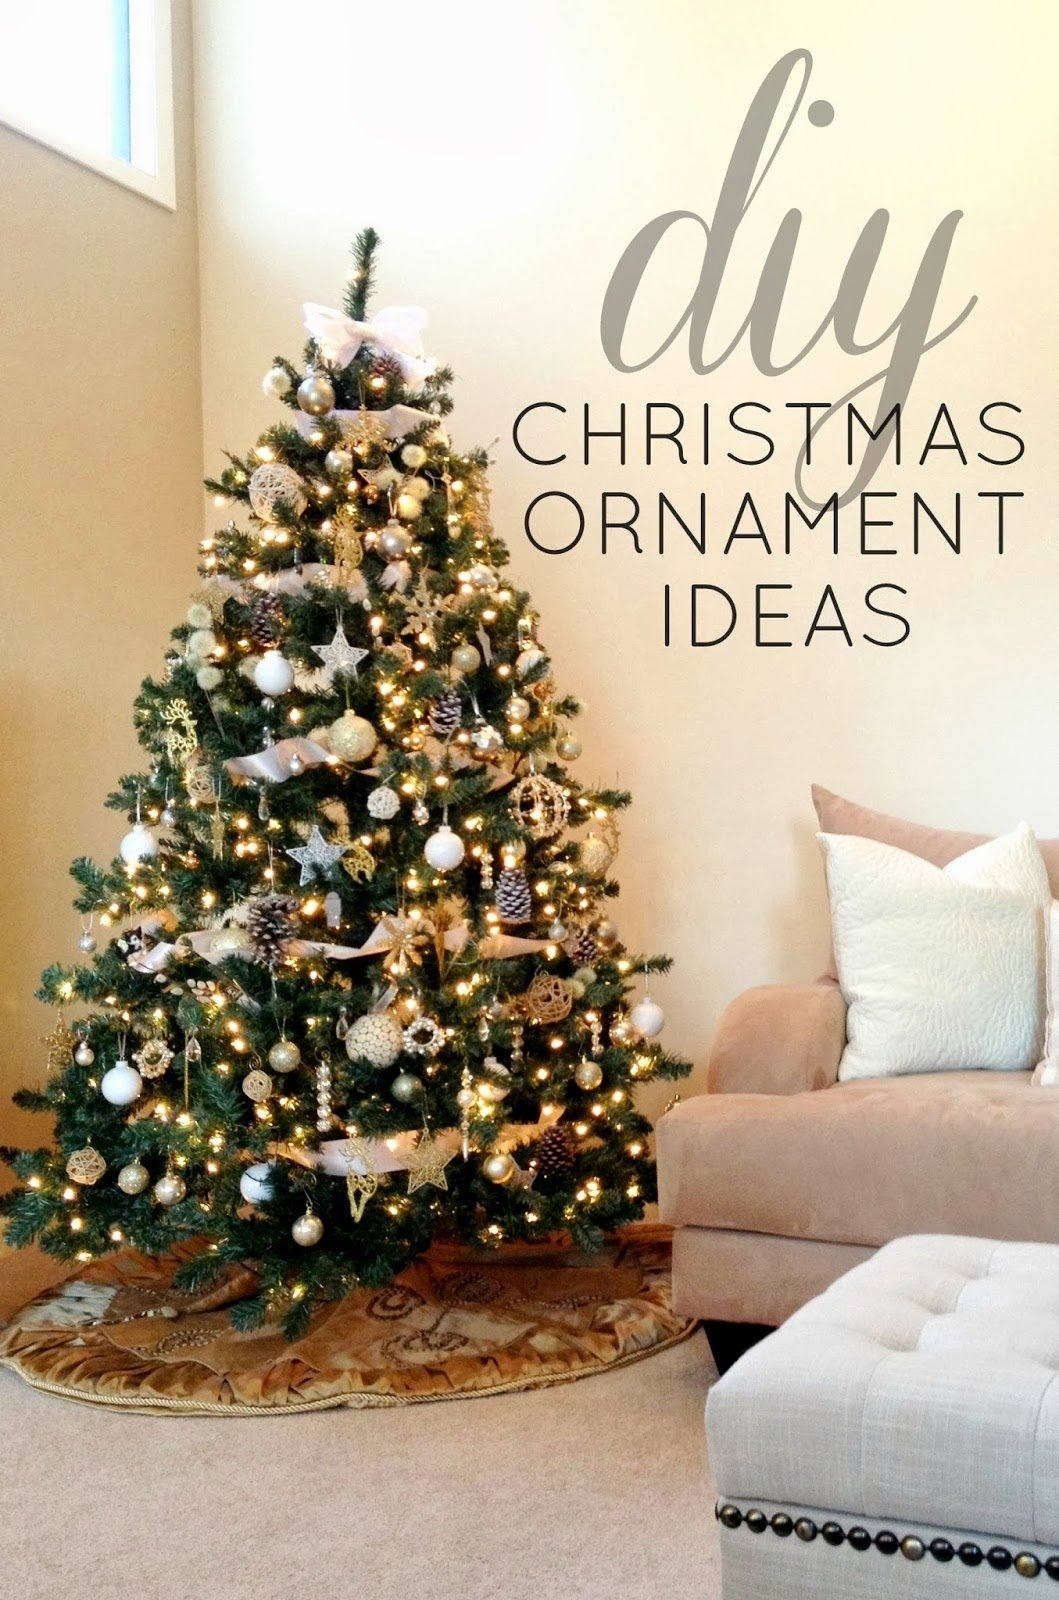 10 Stylish Christmas Tree Decorating Ideas Pictures the 50 best and most inspiring christmas tree decoration ideas for 2018 1